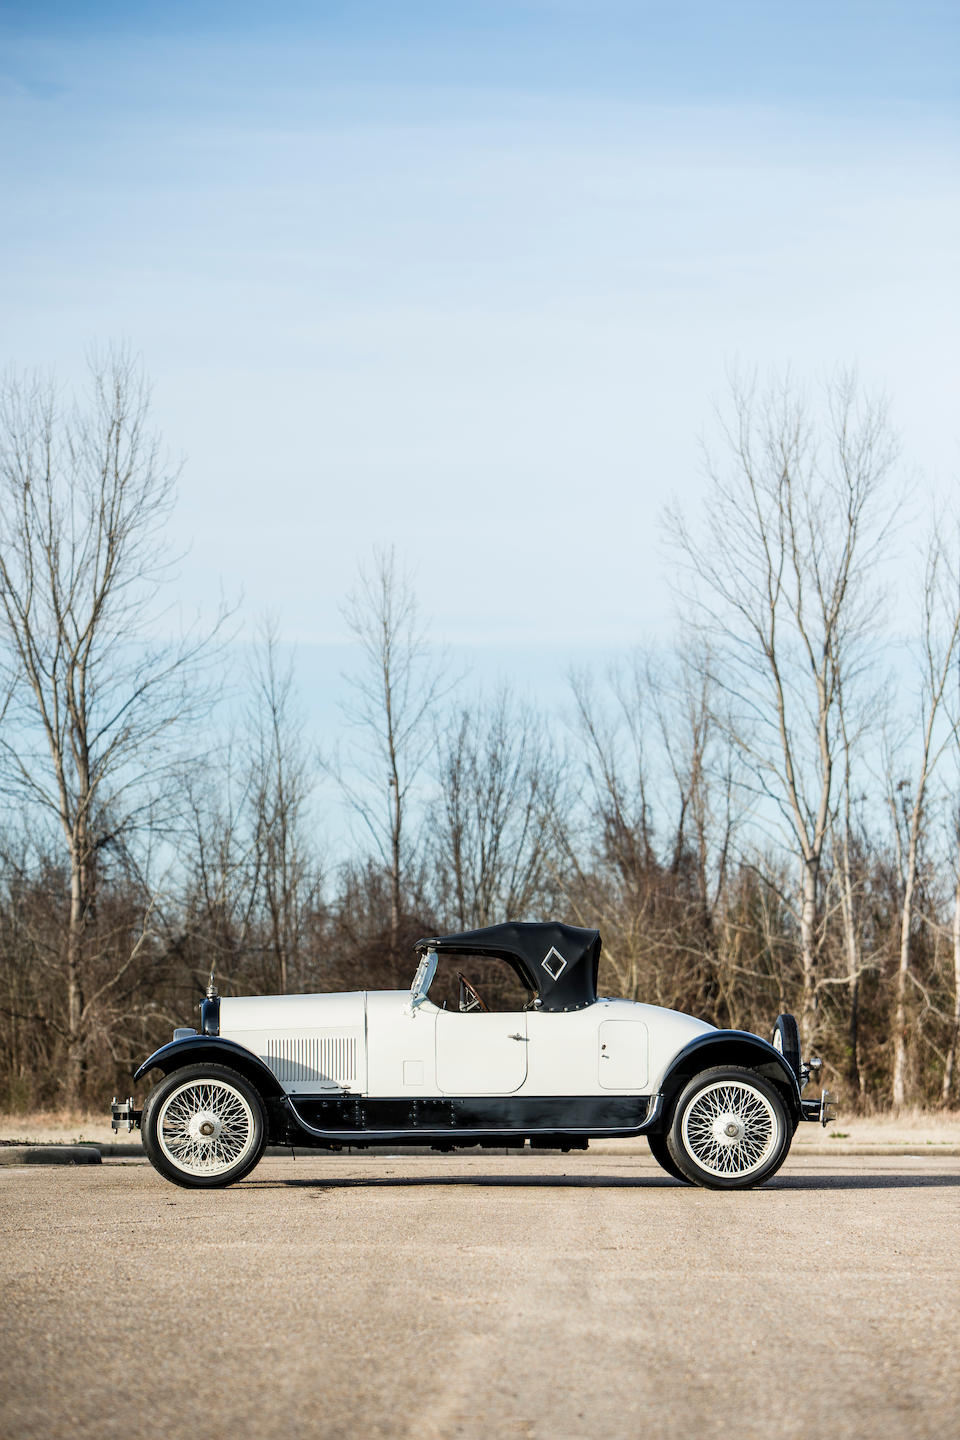 <b>1923 Marmon Model 34 2 Passenger Speedster</b><br />Chassis no. 2230096